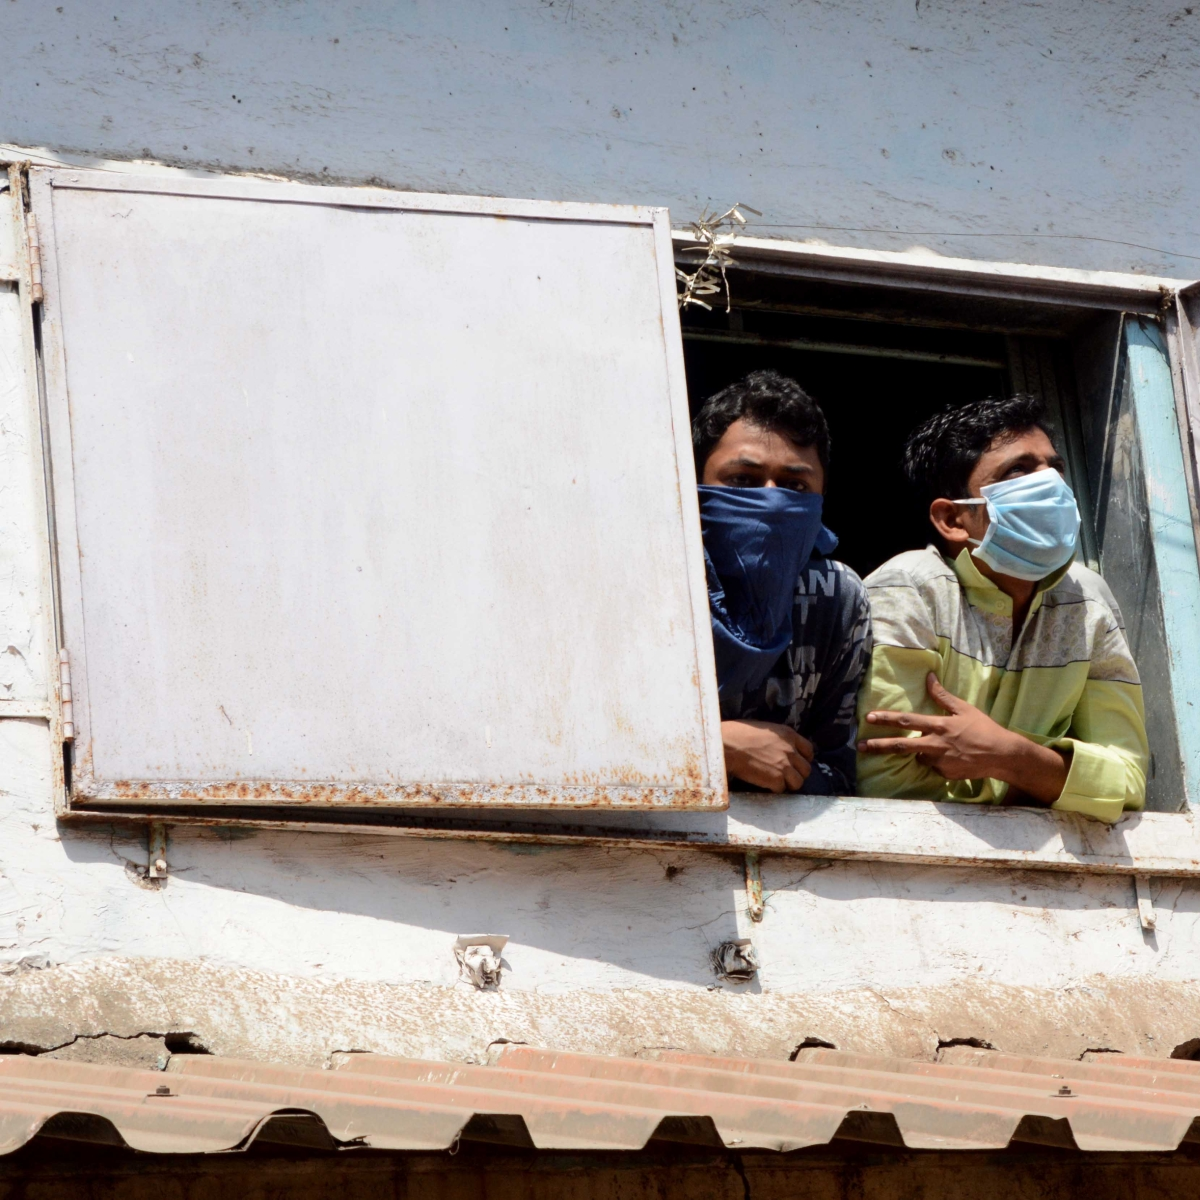 Wedding deferred as Kalina bride's hsg society denies entry to Dharavi groom, parents